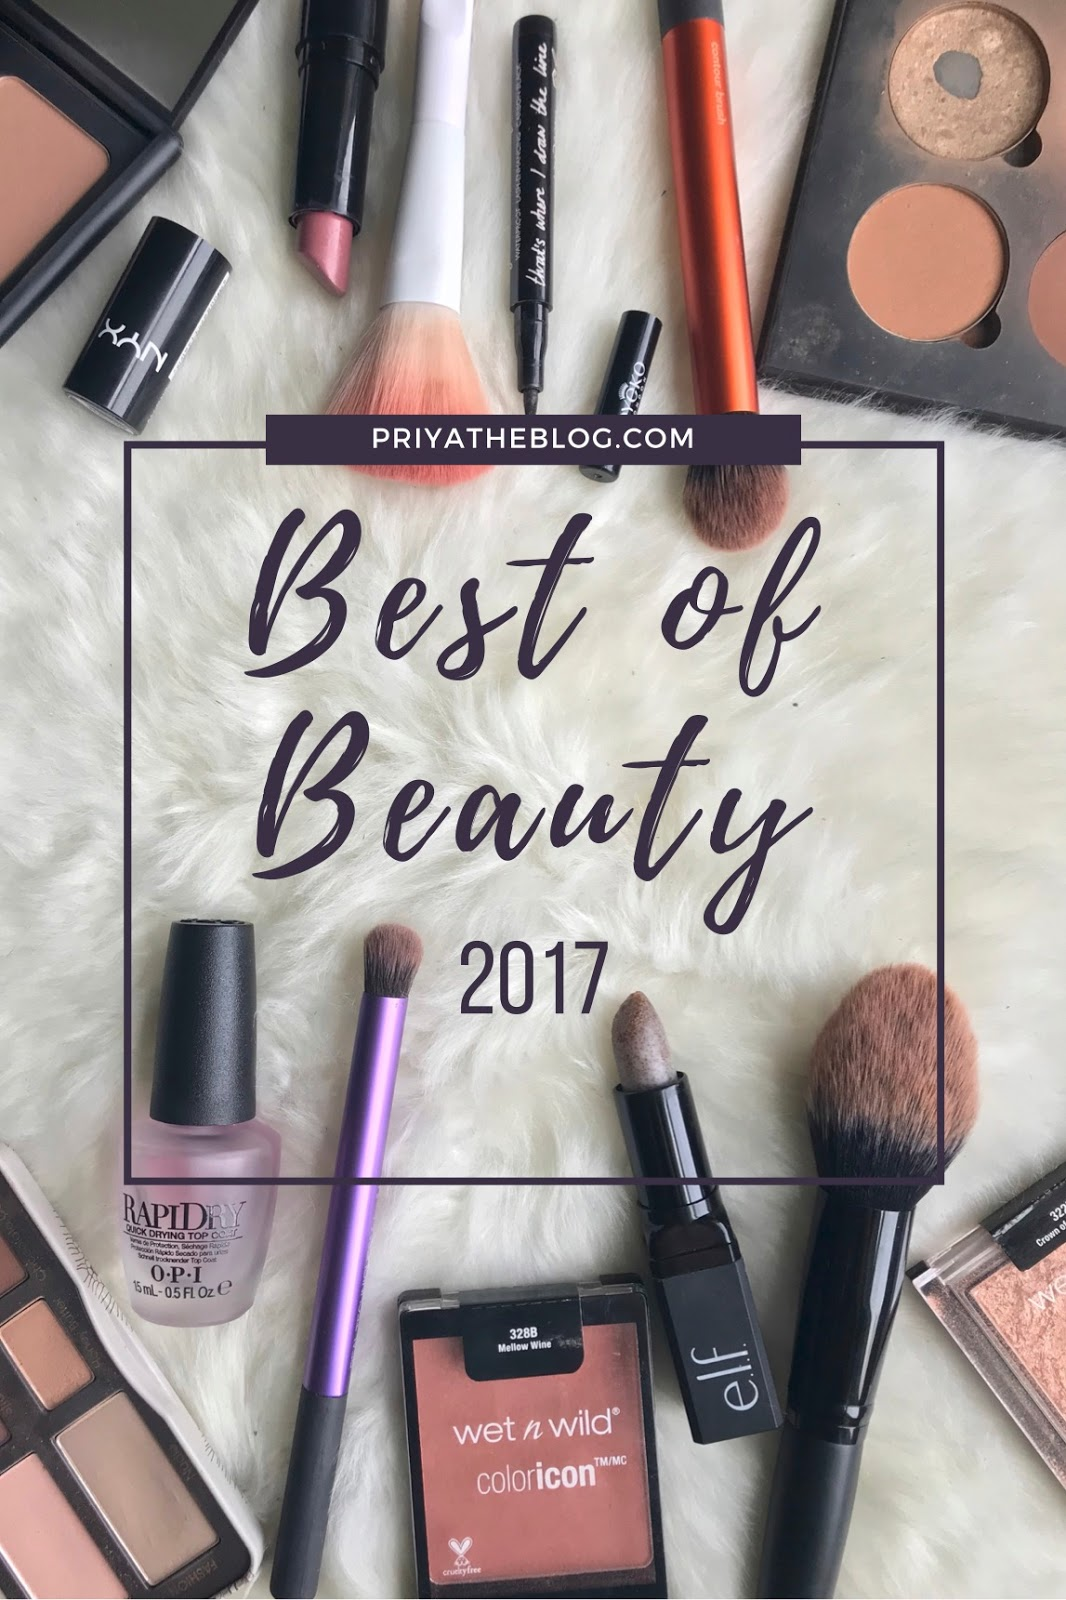 beauty buzz, Wet n Wild highlighter, Real Techniques brushes, Too Faced Neutral Matte palette, e.l.f. cosmetics, NYX Lipstick, OPI RapidDry Top Coat, Wet n Wild blush, Anastasia Contour Palette, Eyeko Liquid Eyeliner, Wet n Wild blush brush, Best of Beauty 2017, Priya the Blog, Nashville Beauty Blogger